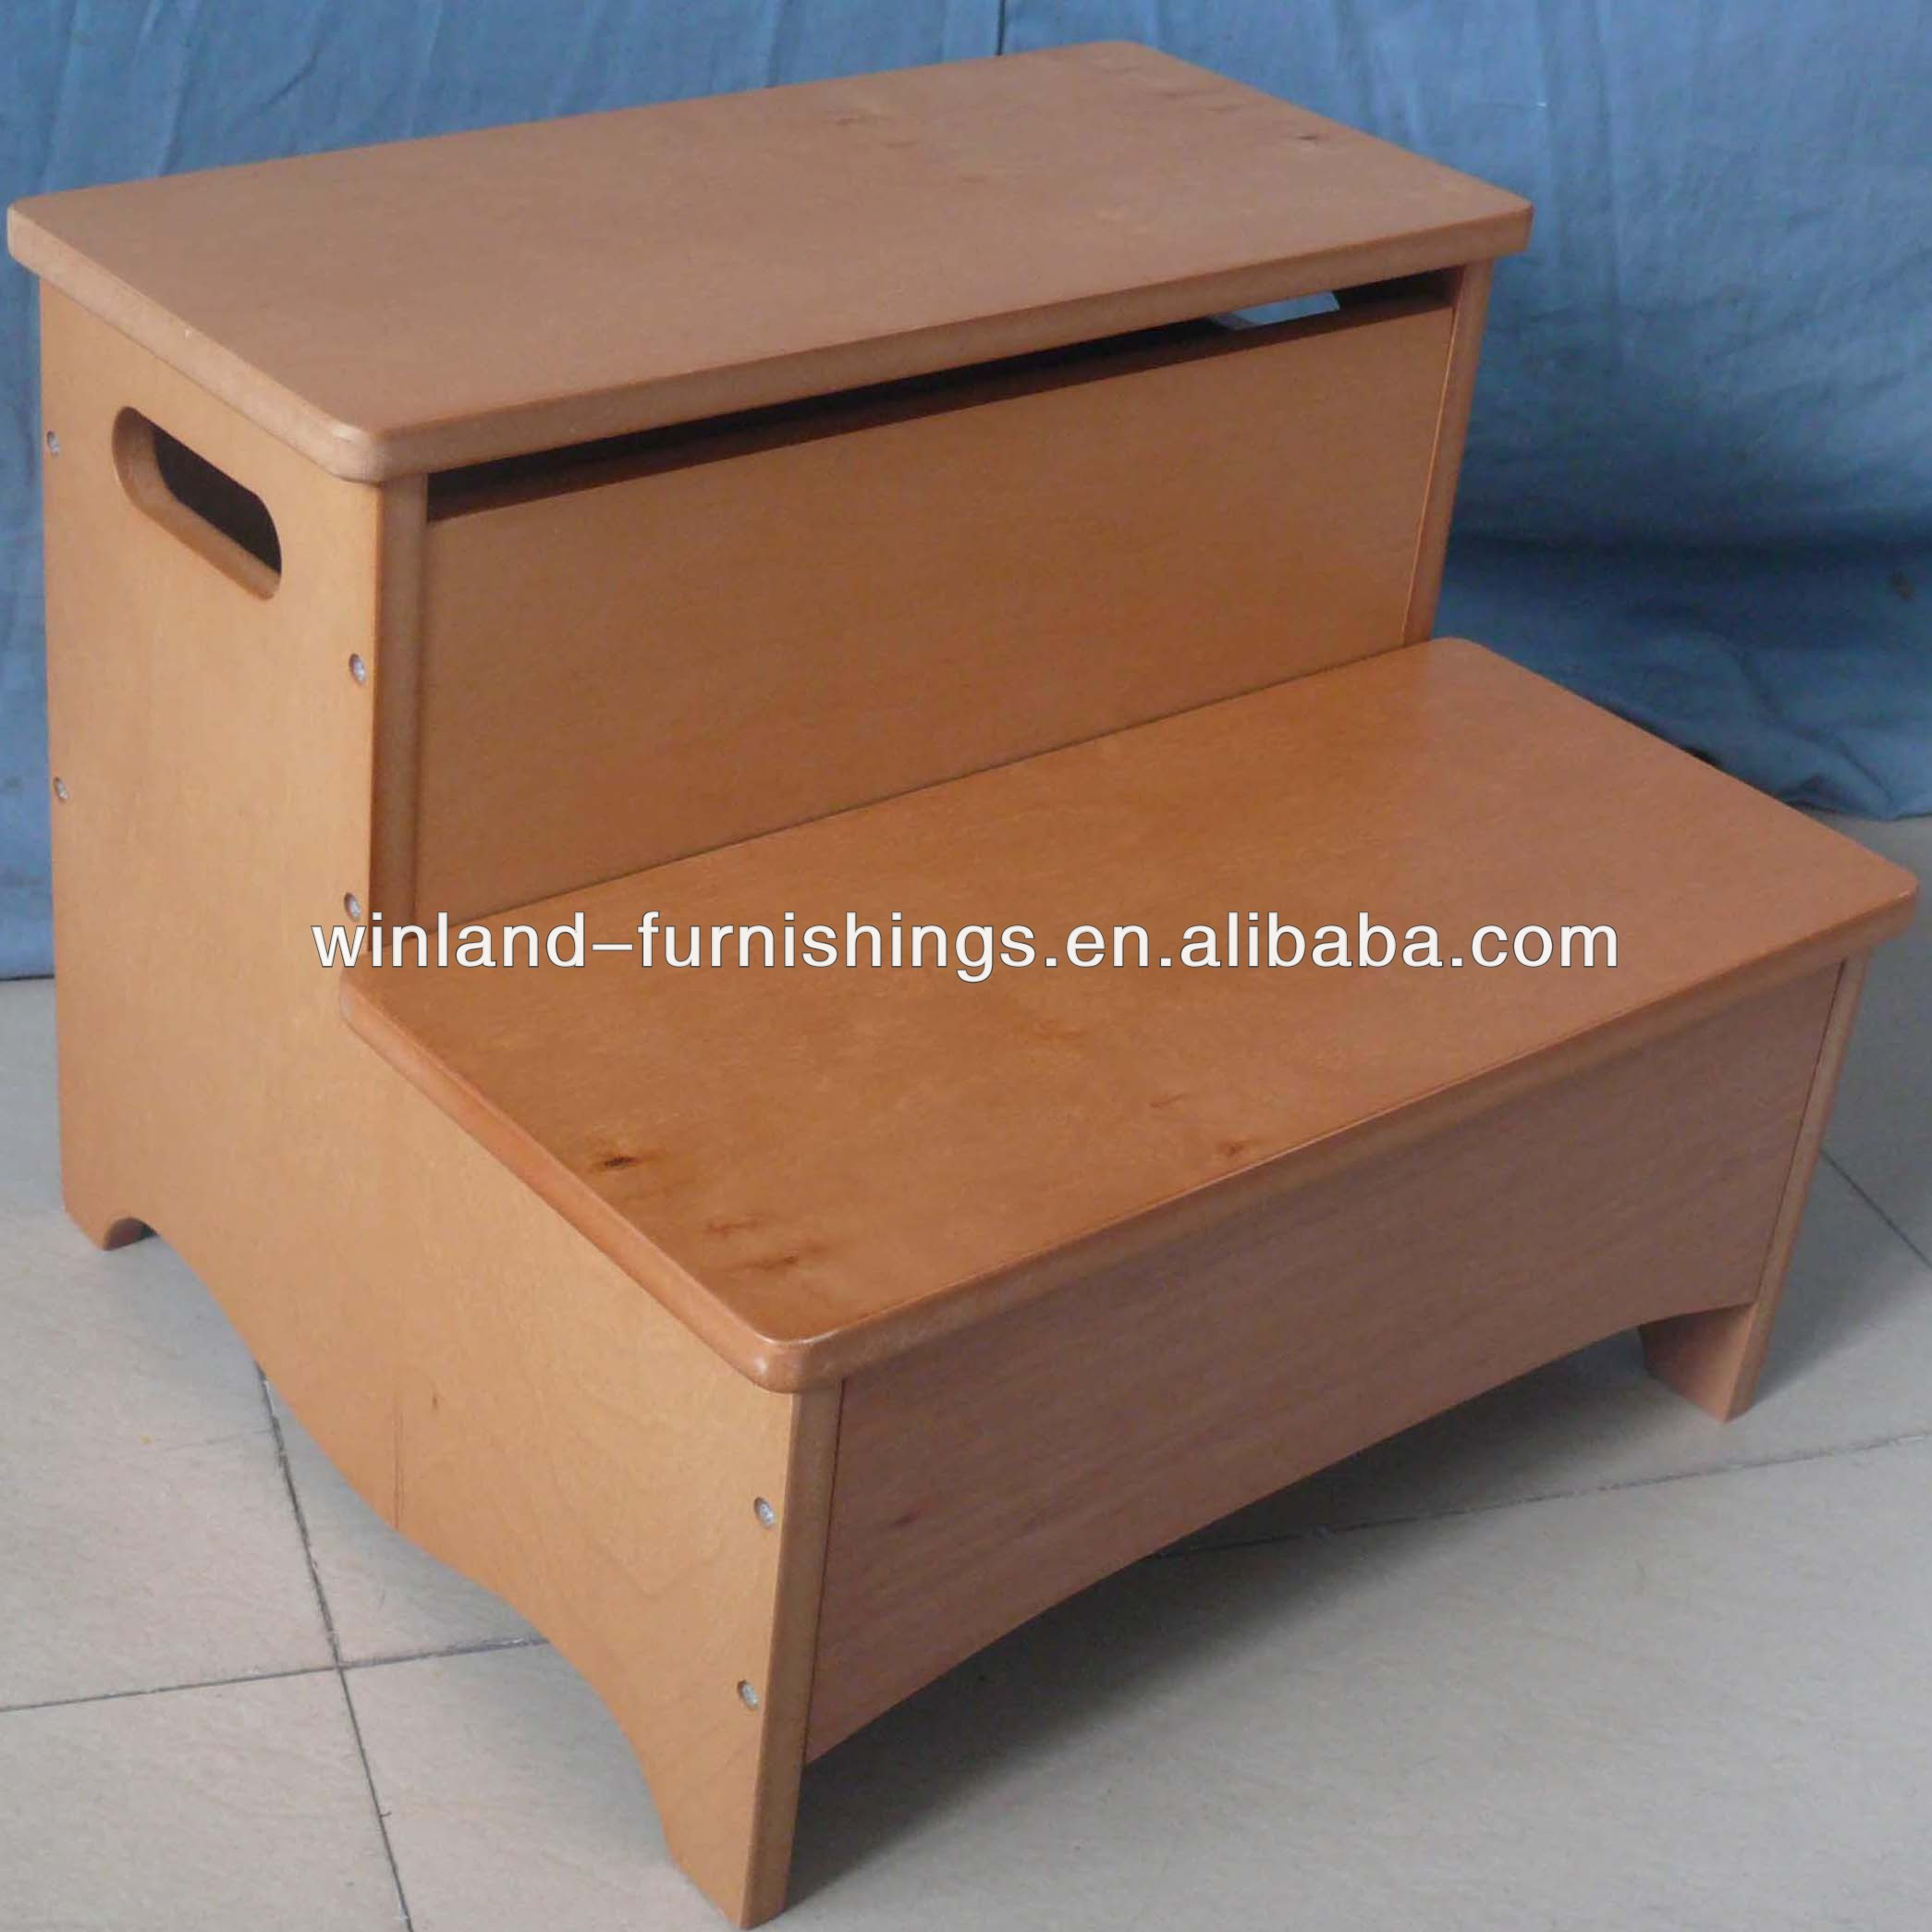 Kids Wooden Step Stool With Storage - Buy Step Stool With StorageWood Step StoolKids Step Stool Product on Alibaba.com & Kids Wooden Step Stool With Storage - Buy Step Stool With Storage ... islam-shia.org